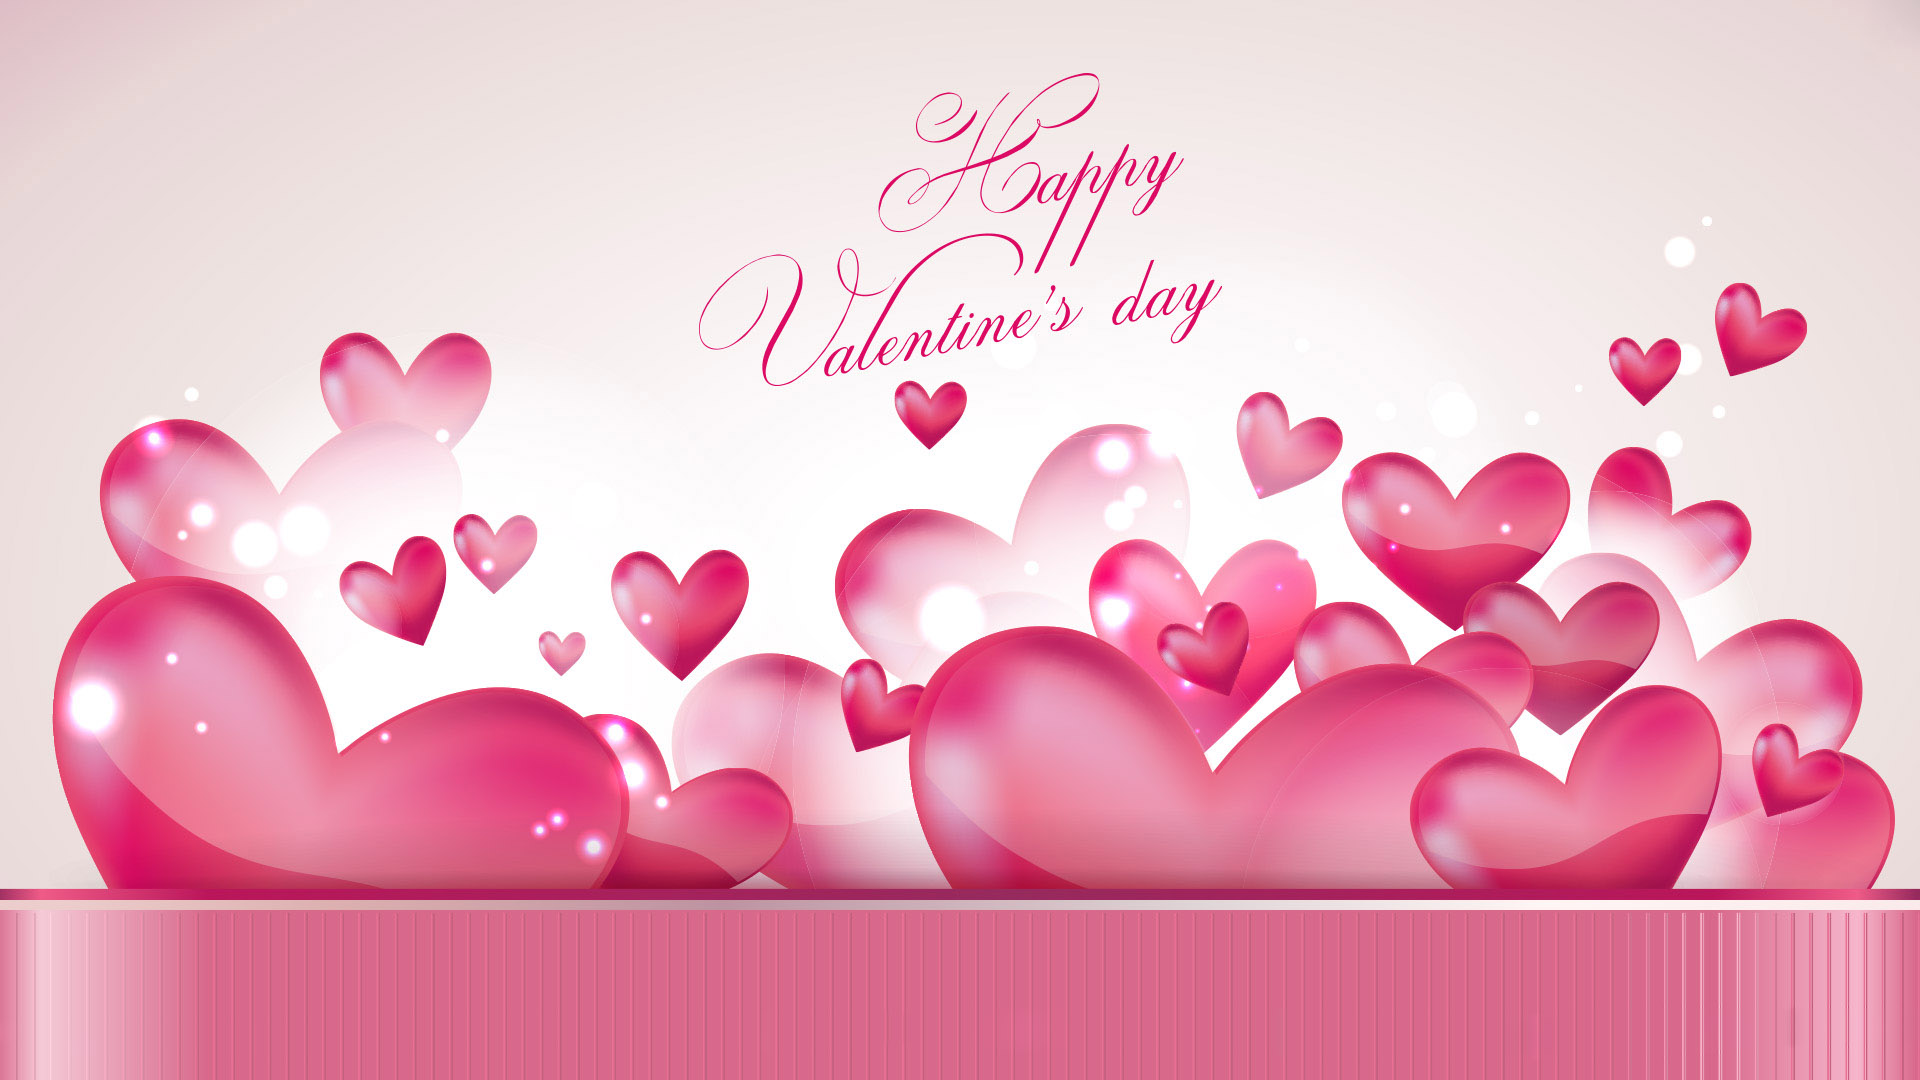 Valentines Day Wallpaper 36 Author Love